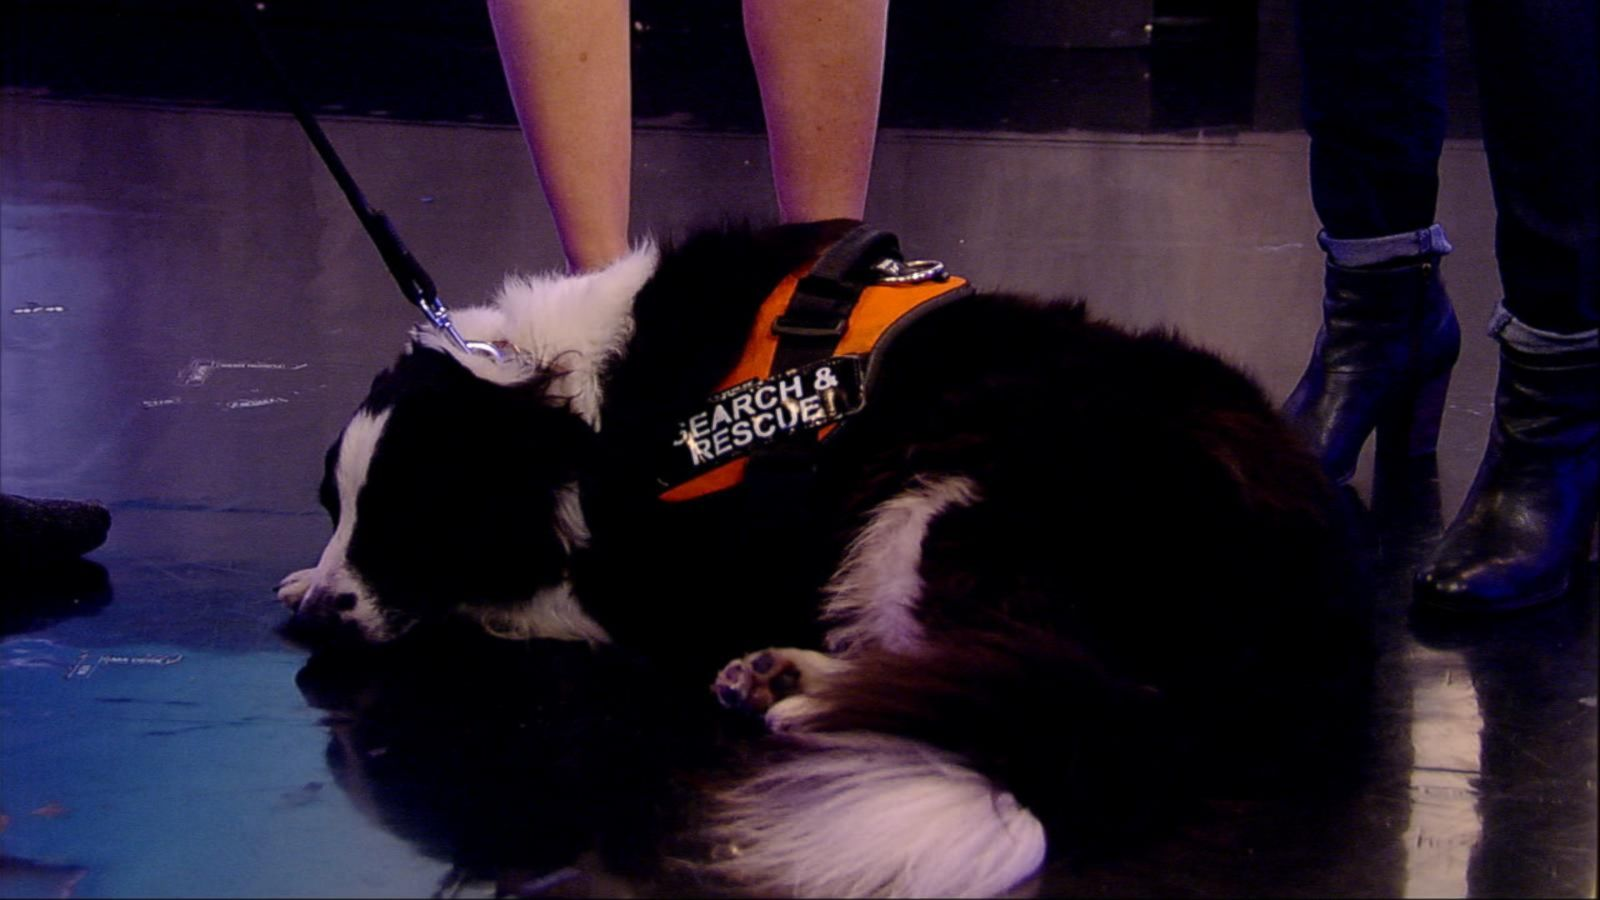 VIDEO: Meet the Heroic Dogs Working to Save Lives